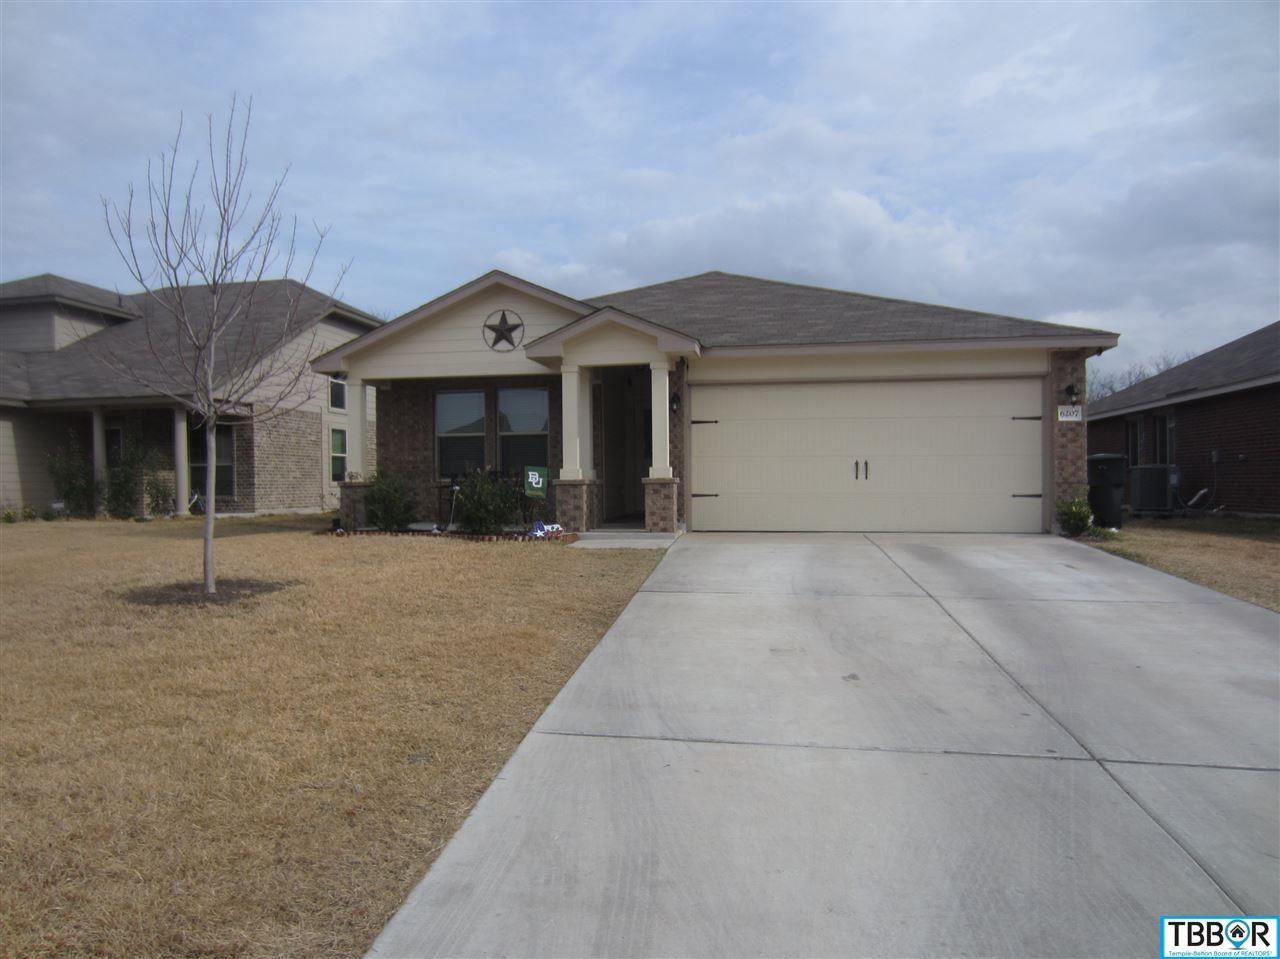 6207 Ambrose Circle, Temple TX 76502 - Photo 1